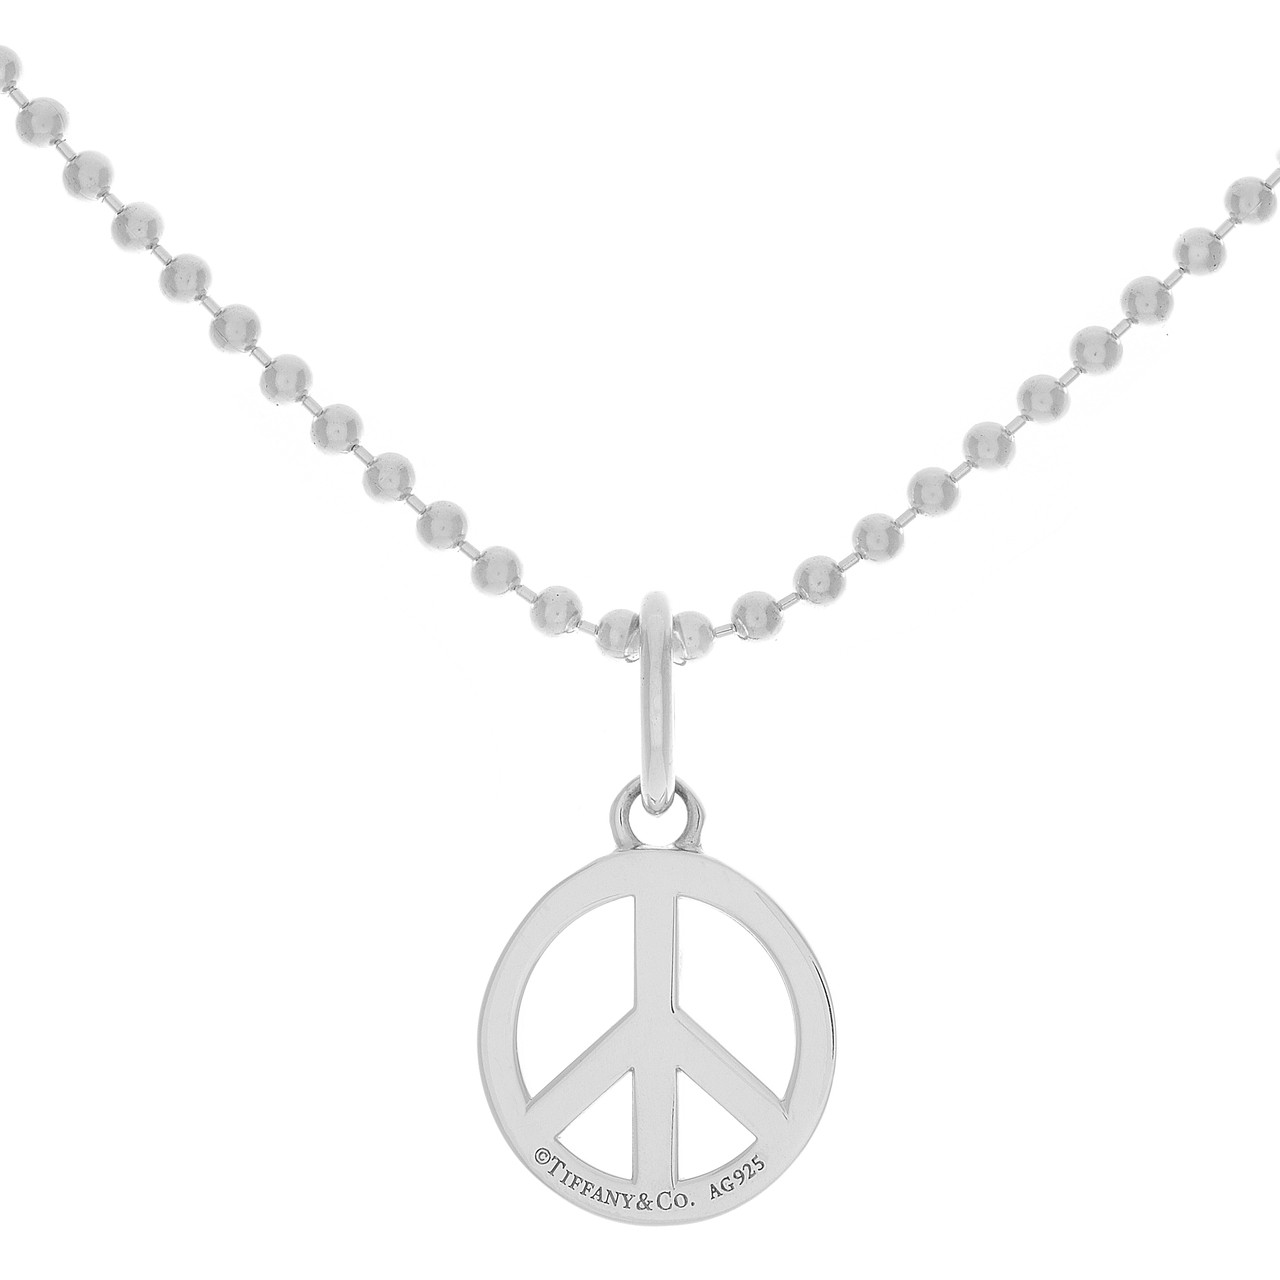 35ae21908d426 Tiffany & Co. Sterling Silver Peace Sign Charm on Beaded Chain